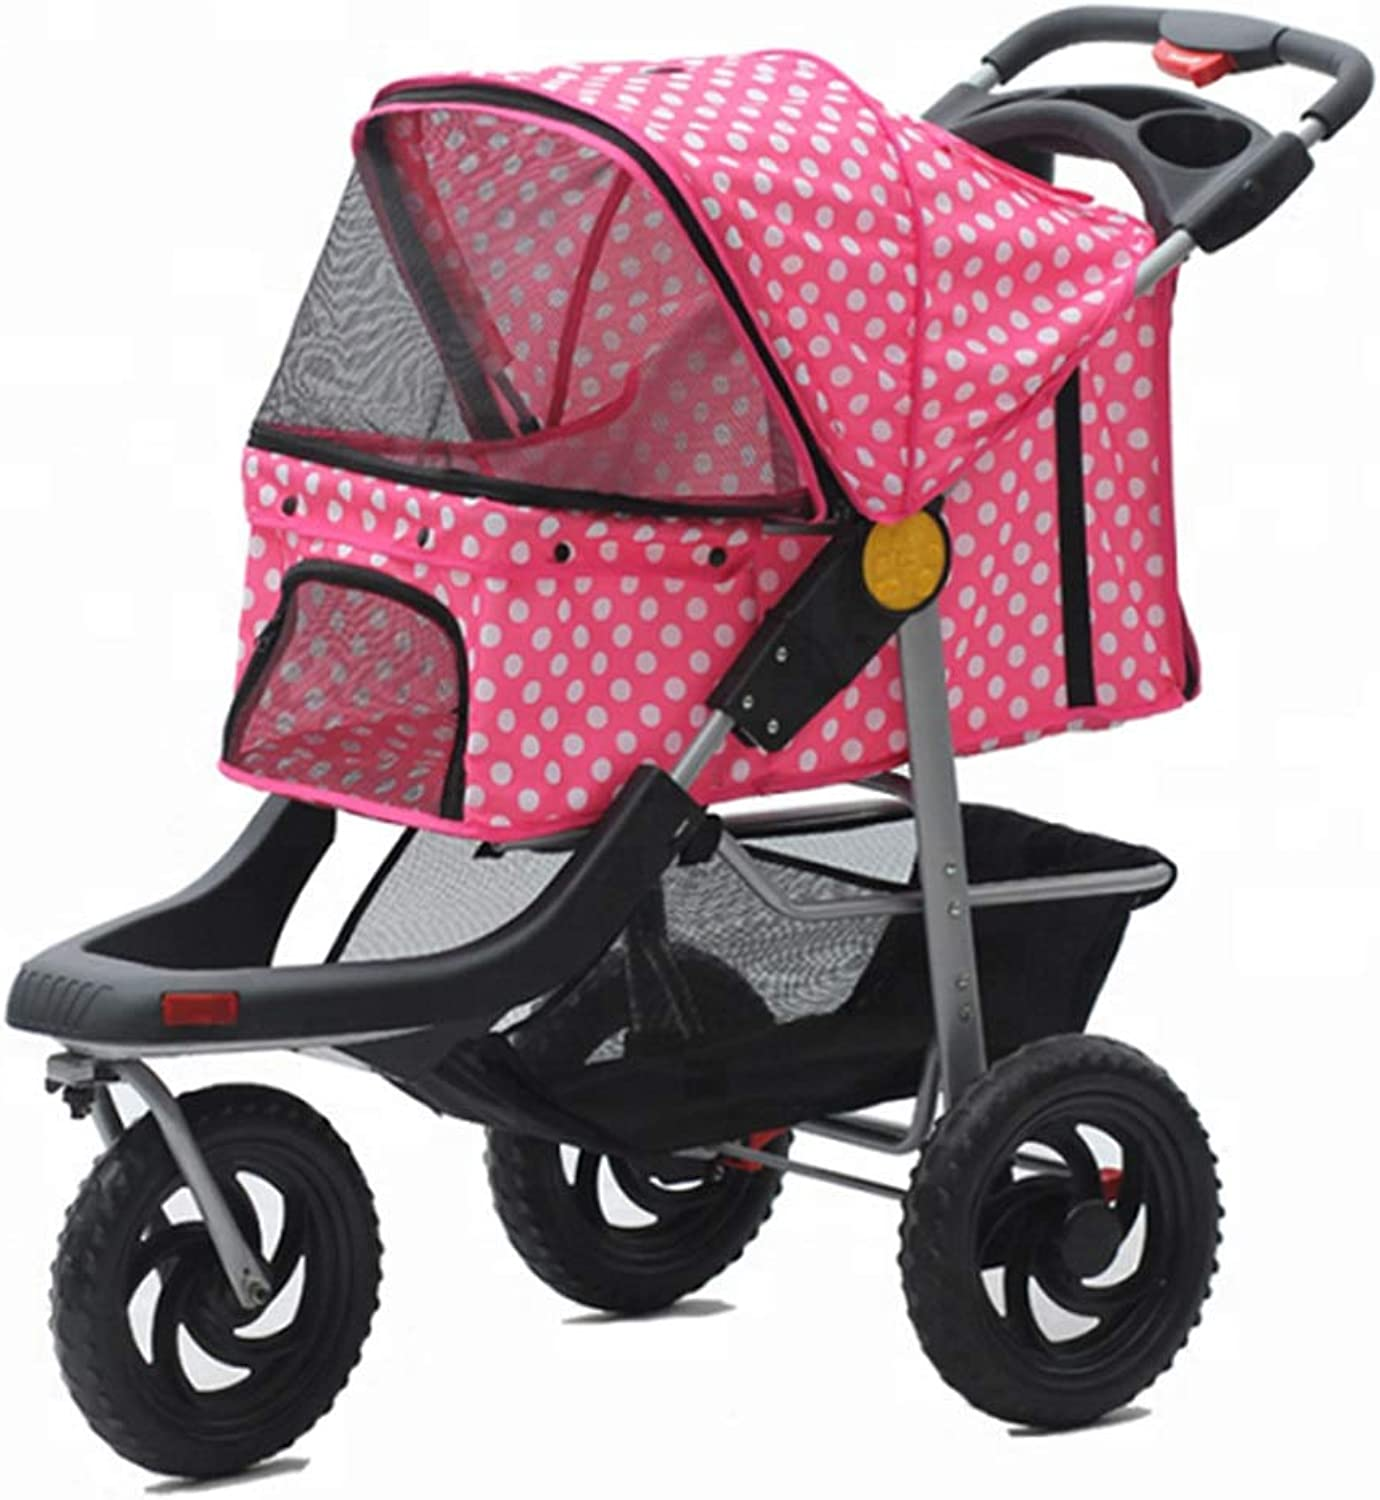 MZP Three Wheels New Dog Pram Suspension Easy Foldable Pram For 600D Oxford Cloth Maximum Weight 25Kg Wheels 360 Degree redatable Cup Holders Storage Basket 6 EVA Steel Wheels (color   C)